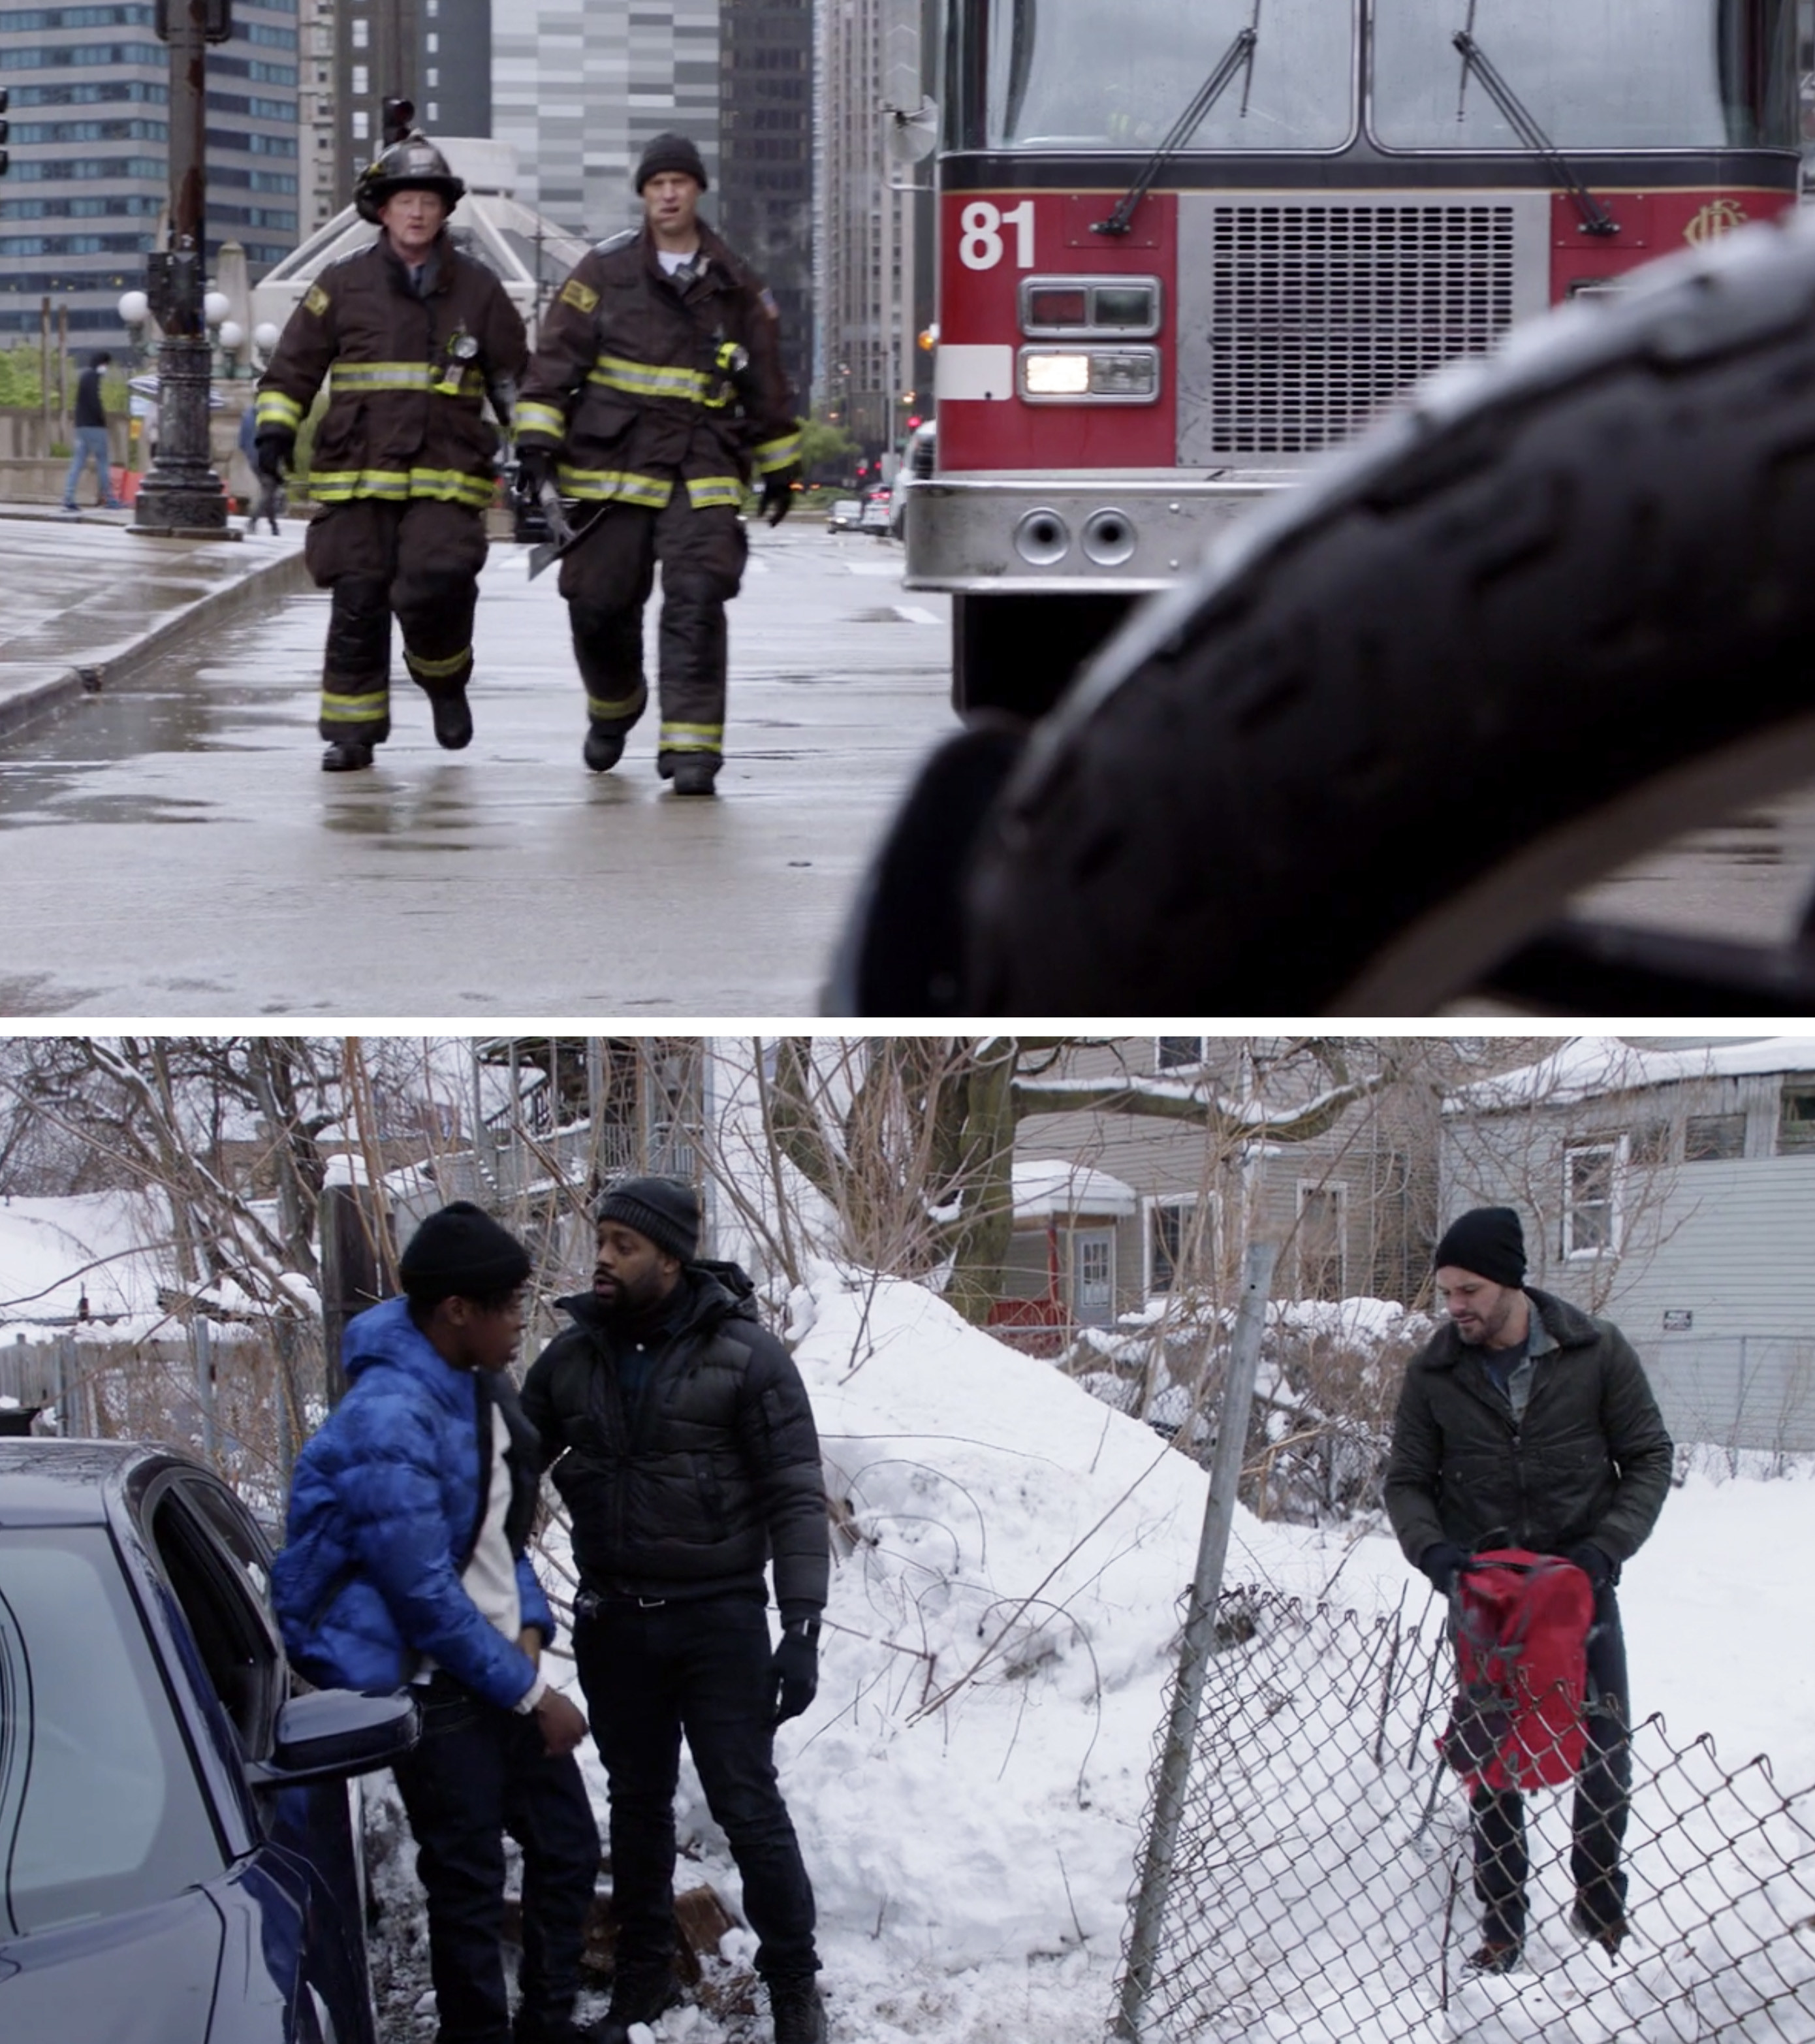 The cast of Chicago Fire filming on the street and the Chicago PD cast filming in the snow